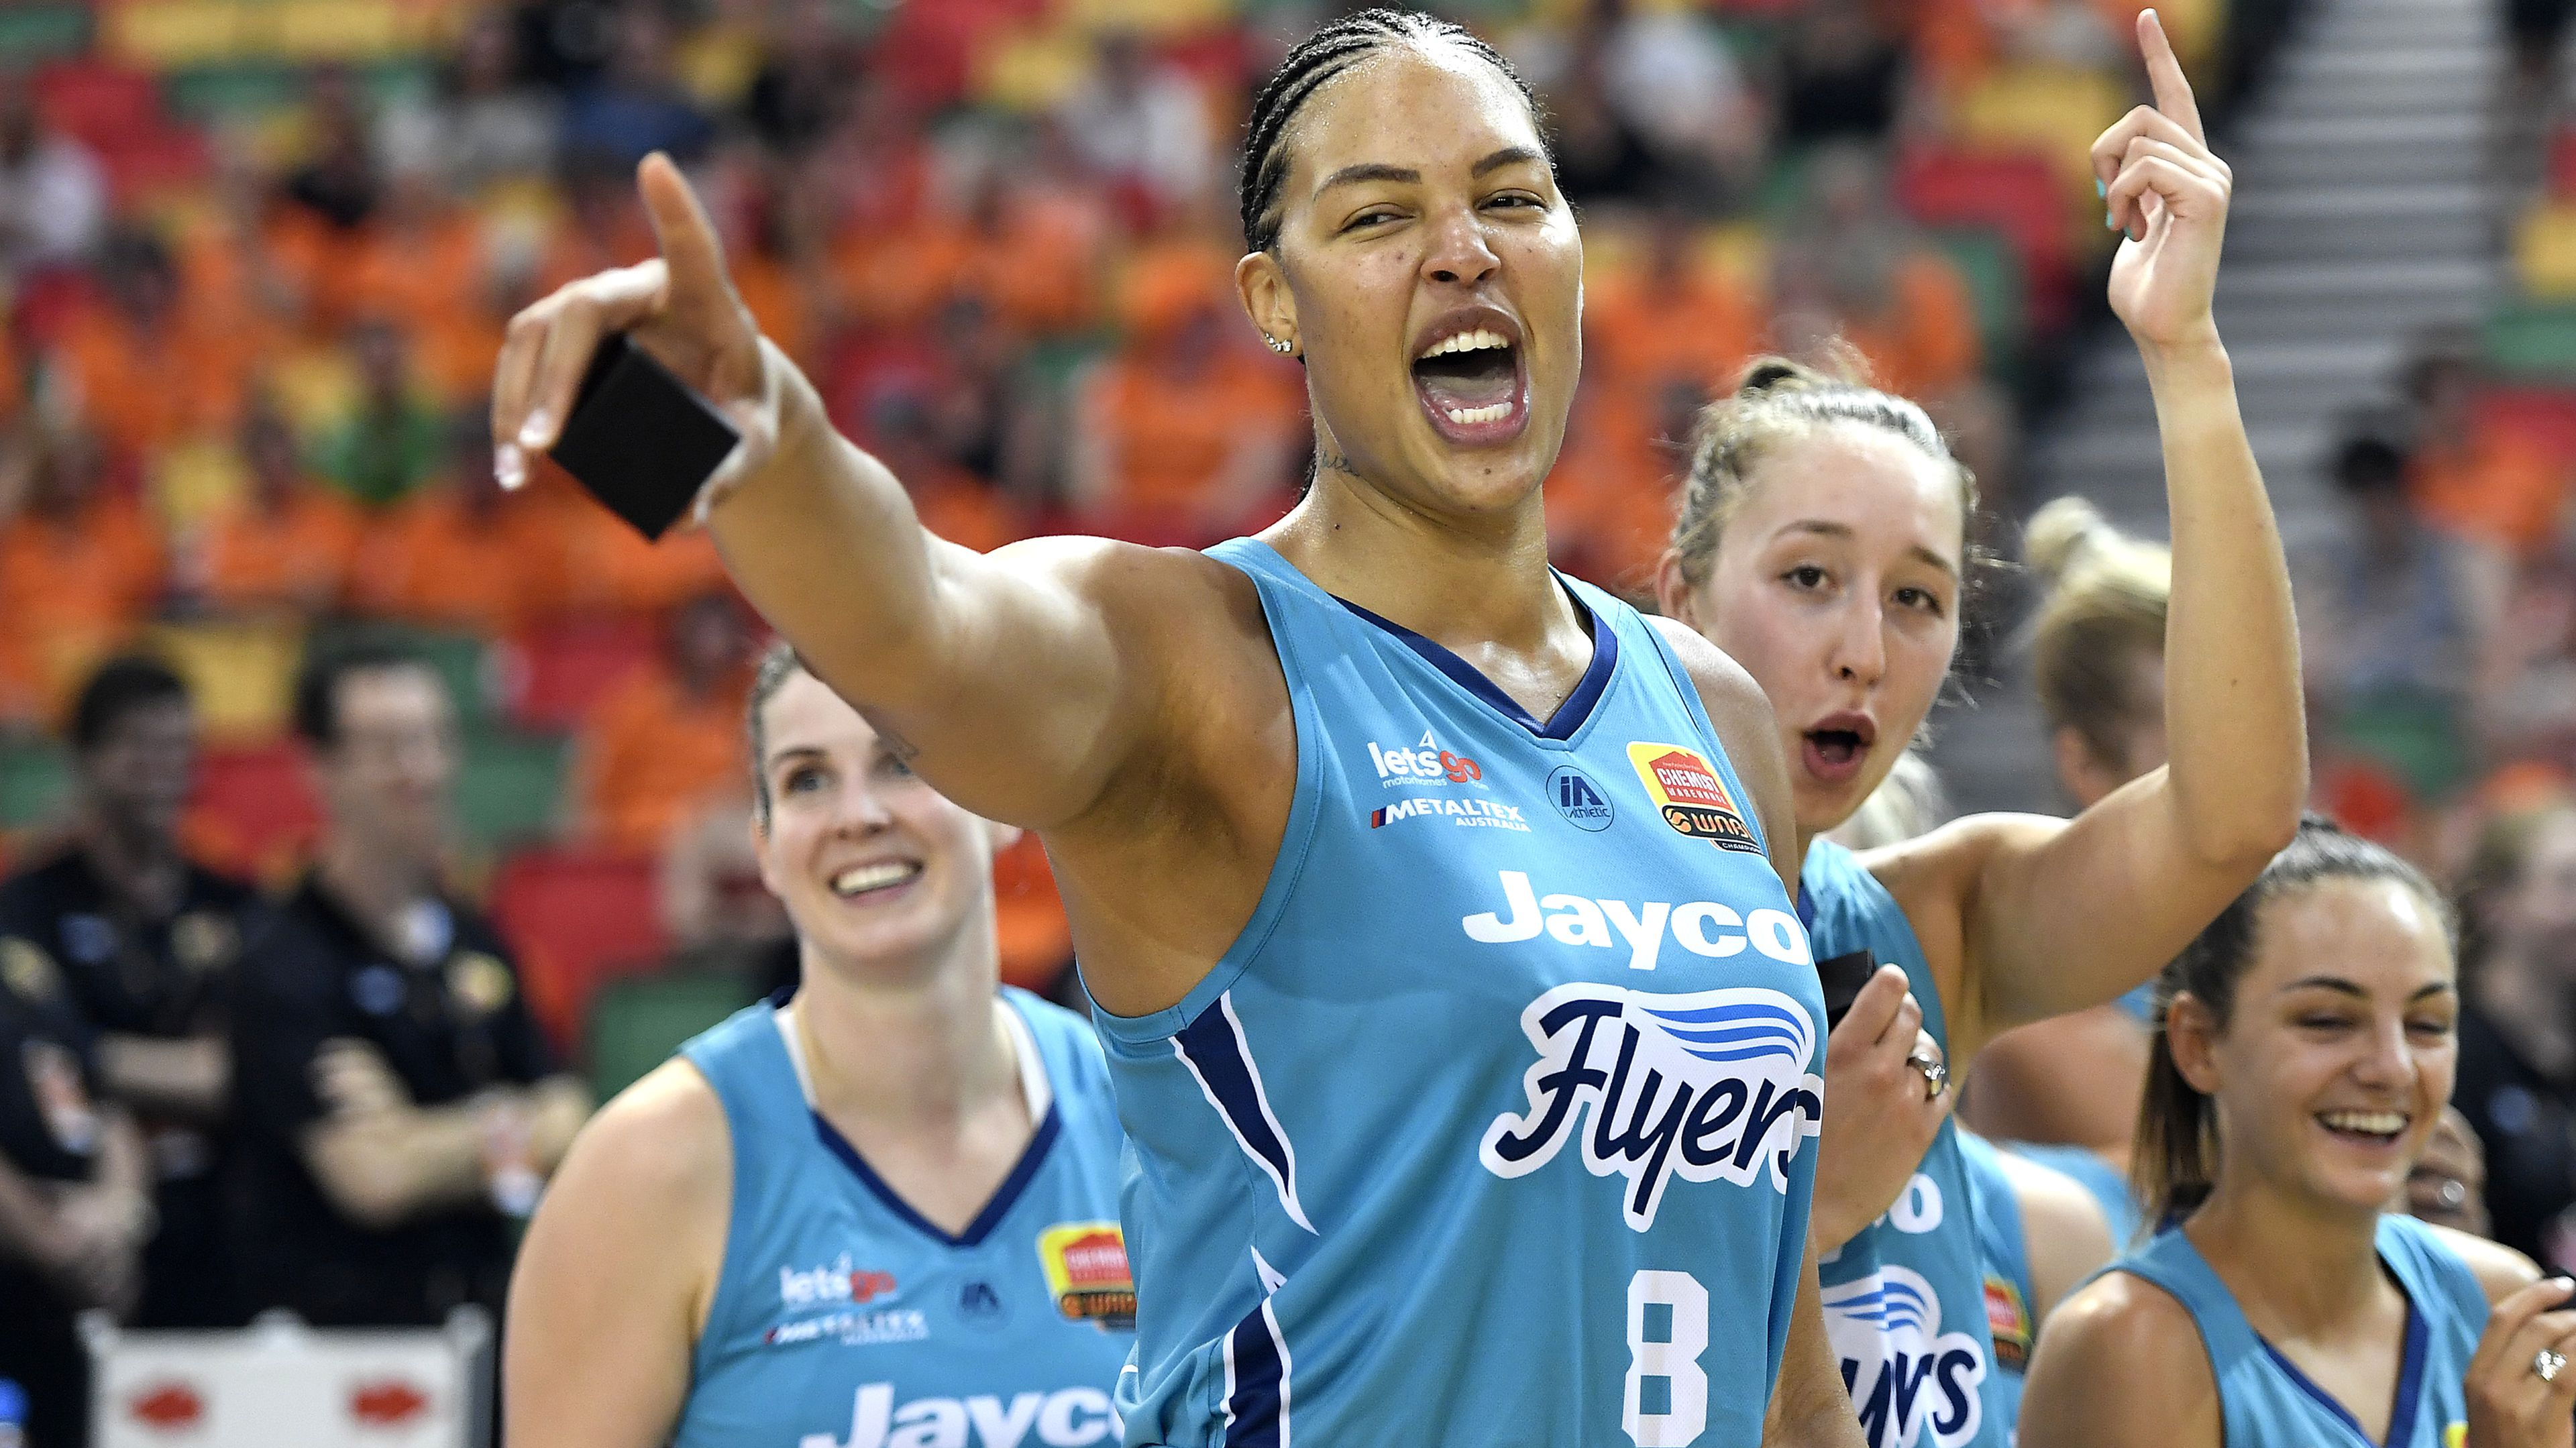 Liz Cambage and the Southside Flyers celebrate victory.